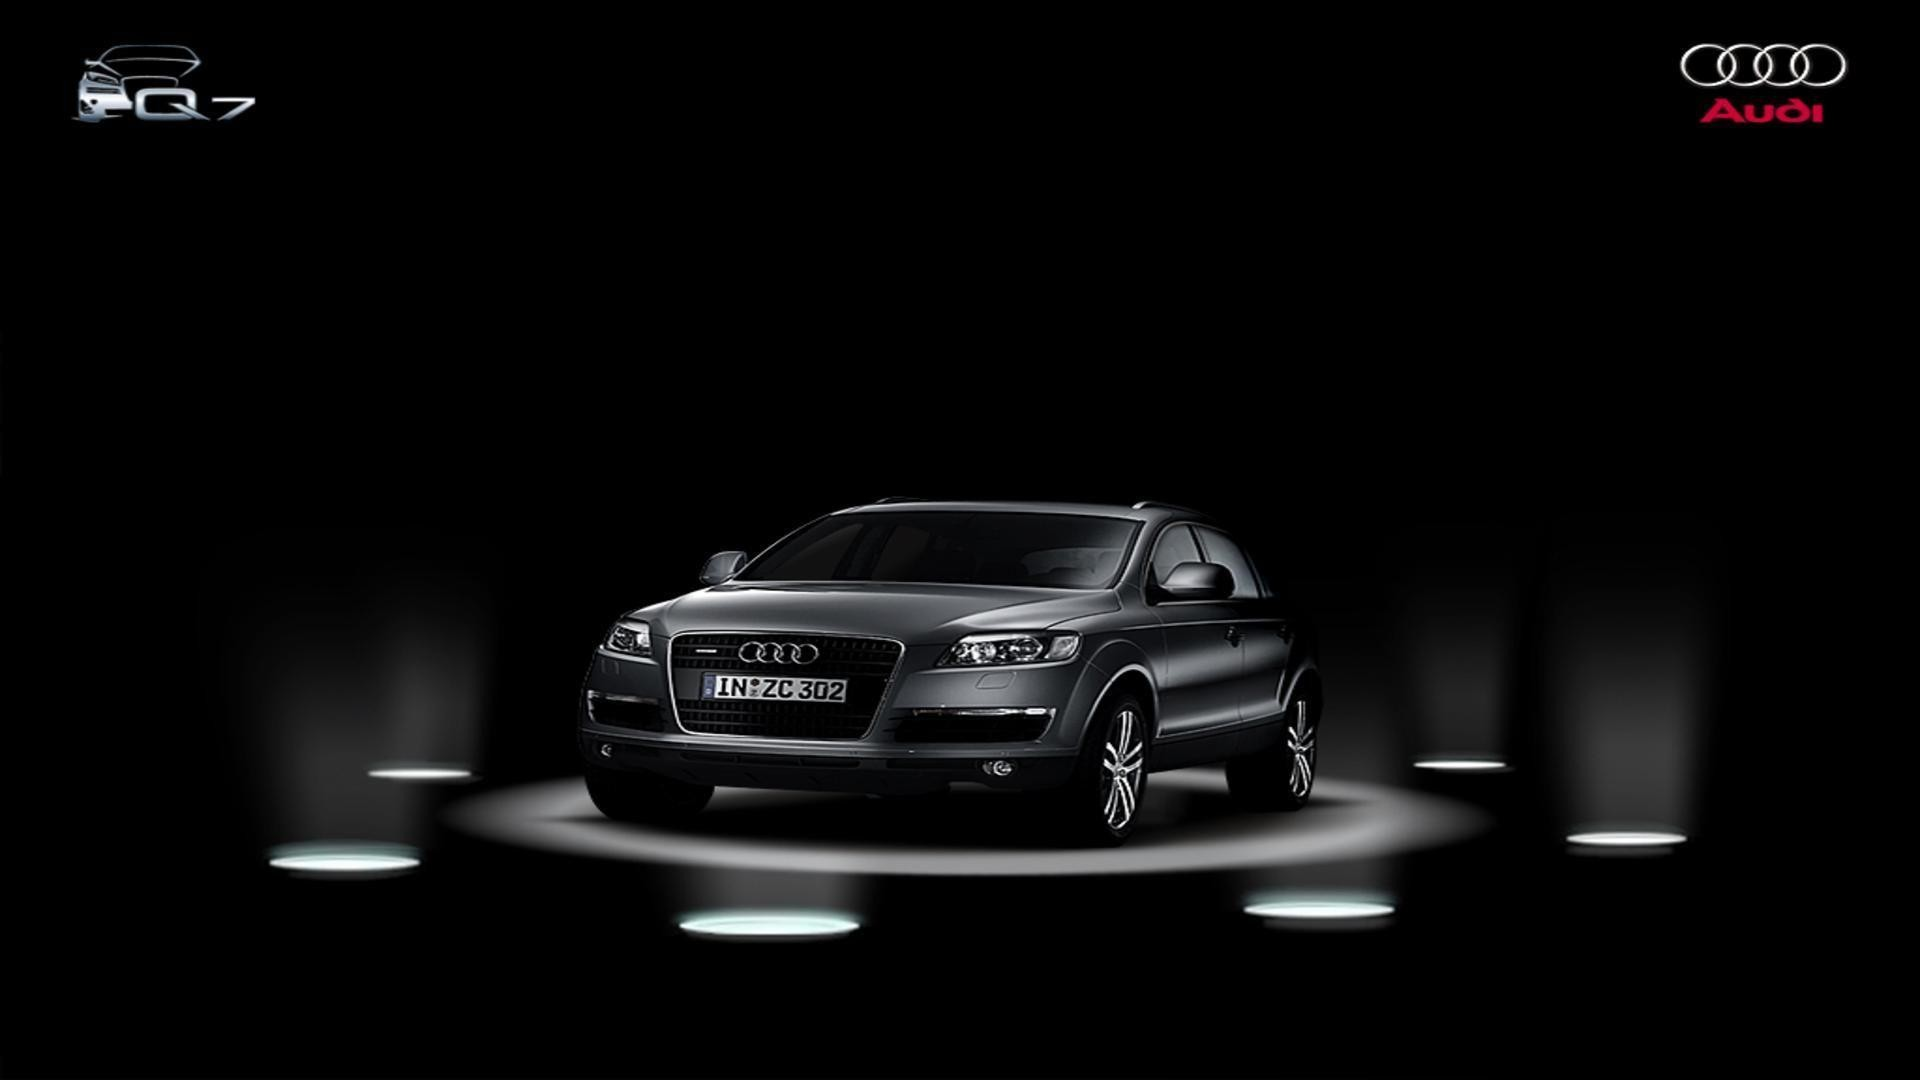 1920x1080 Audi cars black edition free desktop background - free wallpaper image